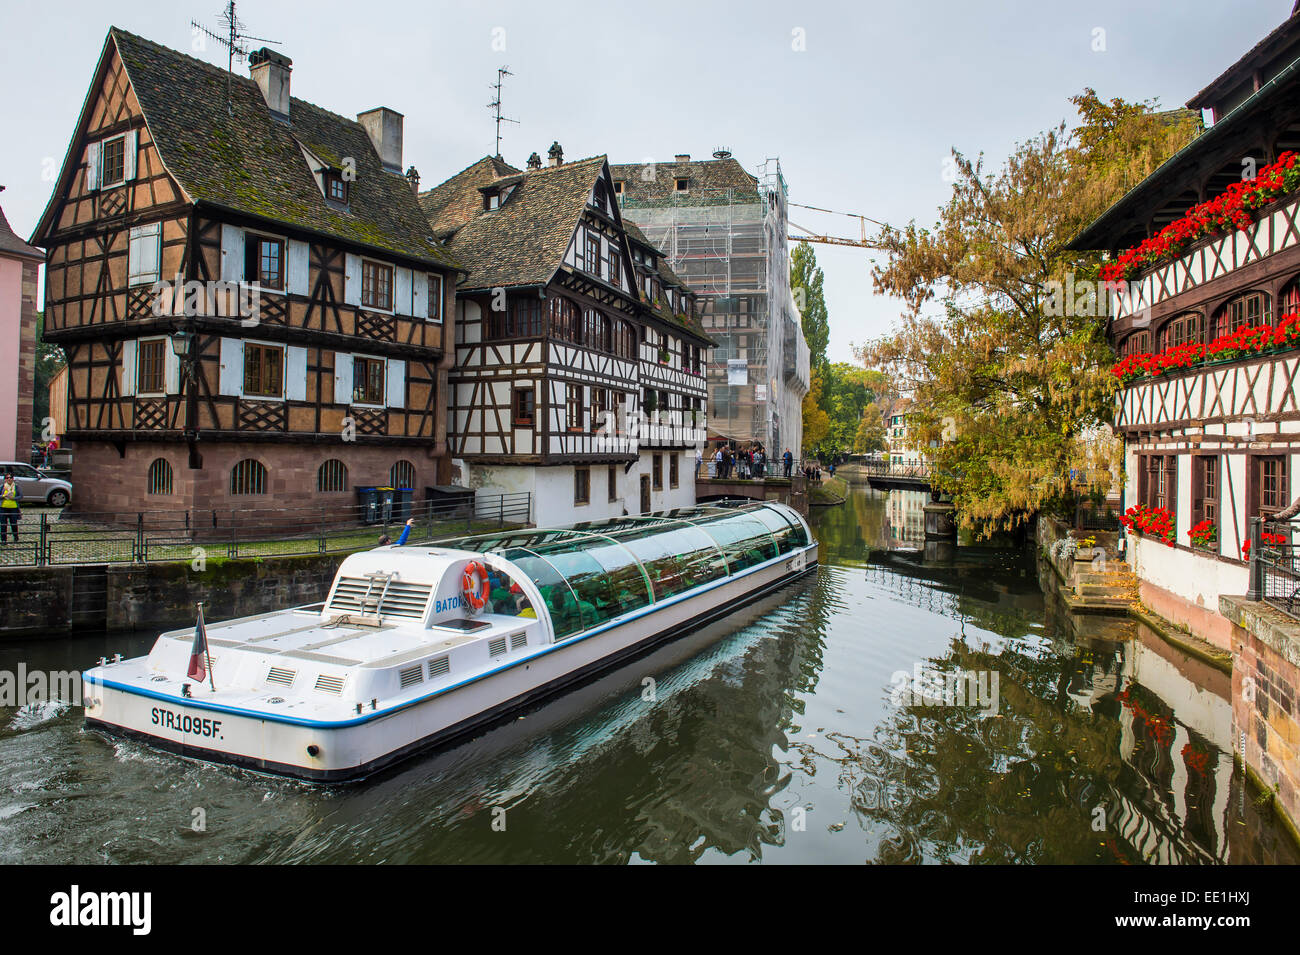 Tourist boats in the lock, the tanners' quarter, Petite France, Strasbourg, Alsace, France, Europe - Stock Image